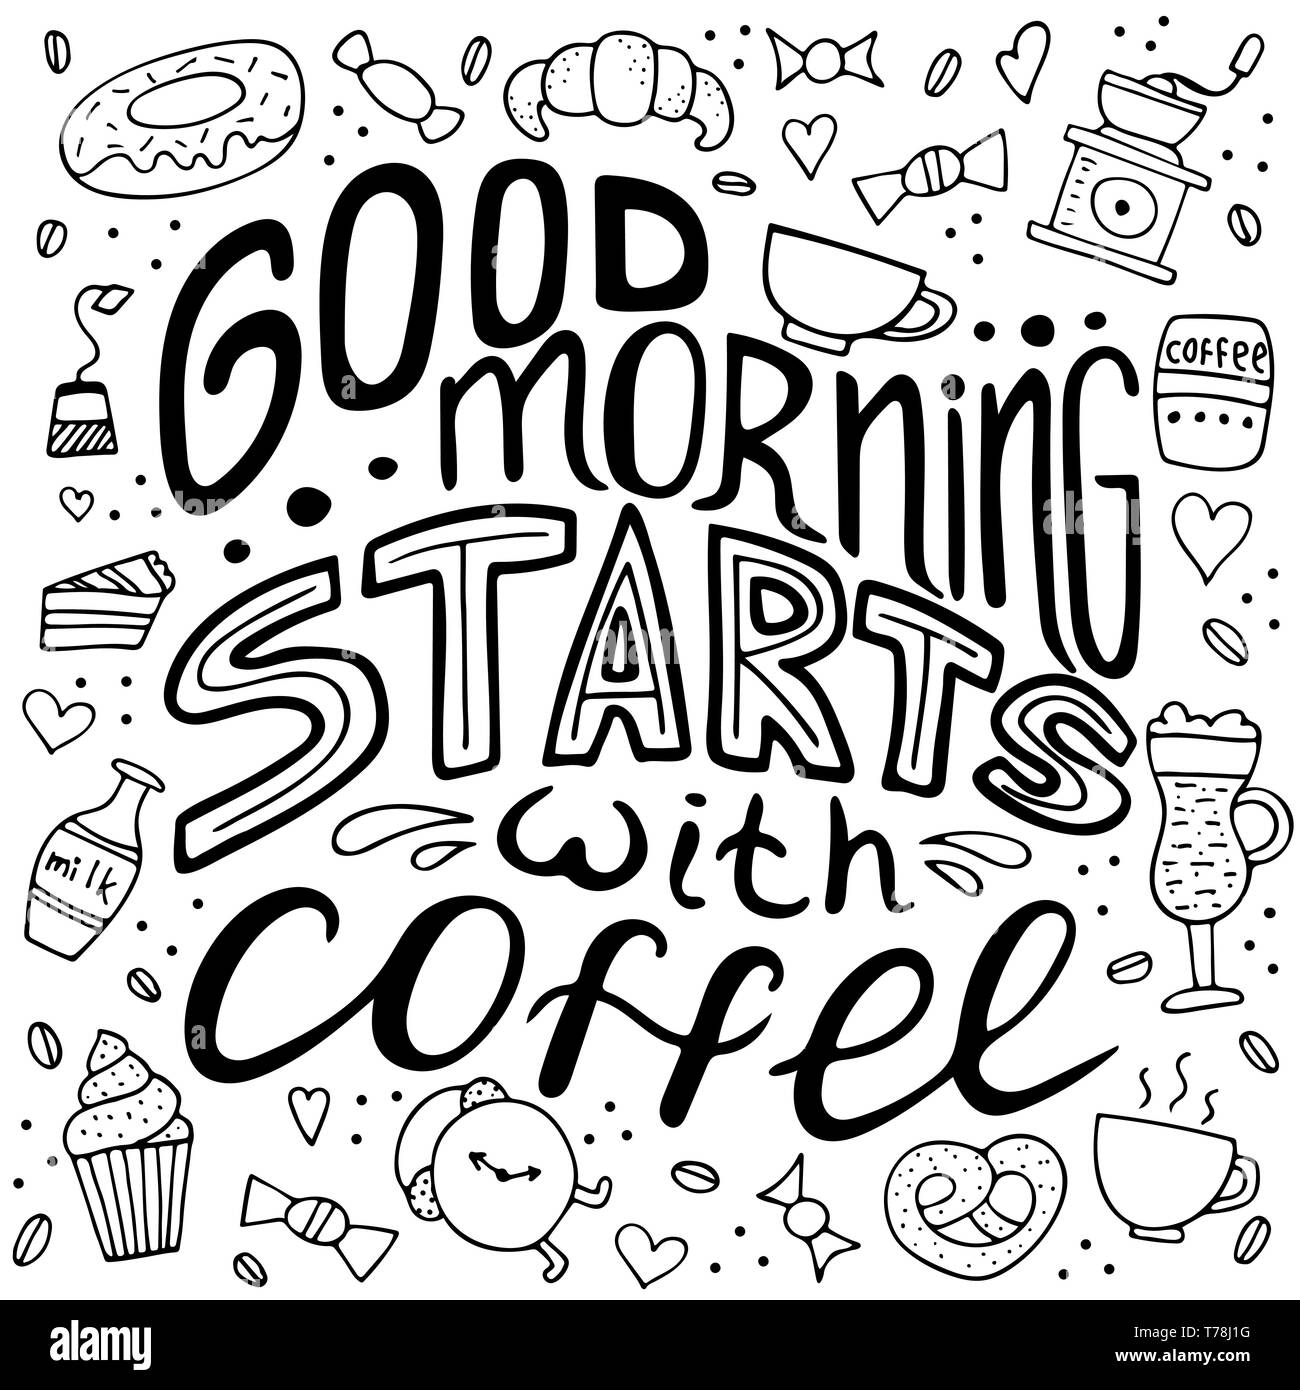 Hand drawn lettering - Good morning starts with coffee. Doodle lifestyle phrase, slogan illustration. Vector design. Stock Vector